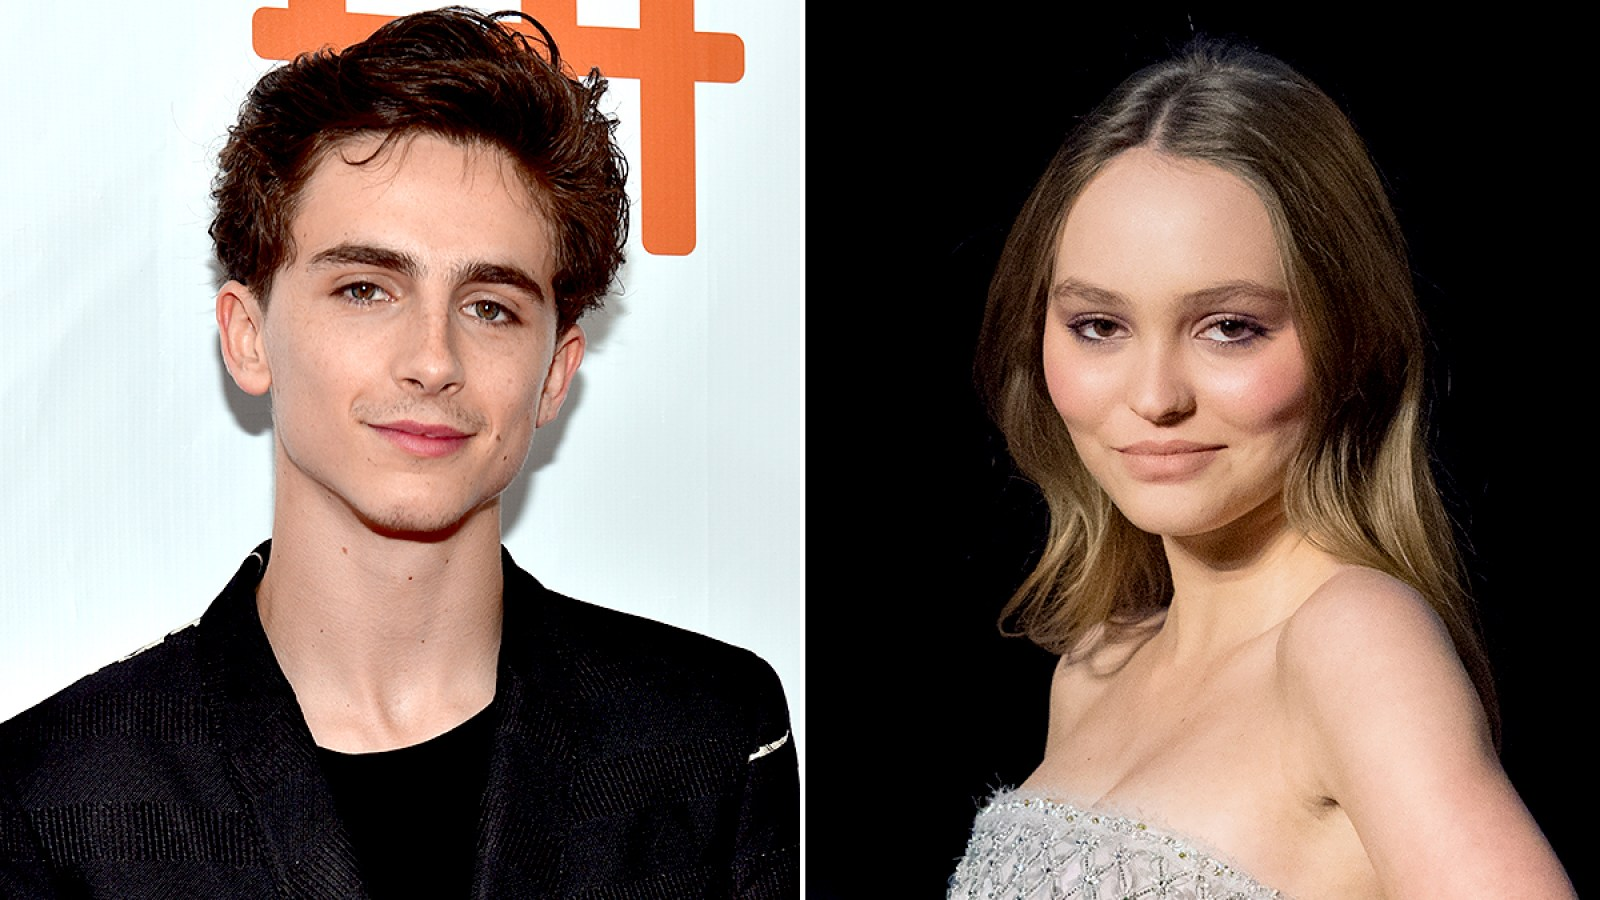 Timothee Chalamet, Lily-Rose Depp 'Were in Good Spirits' on Date